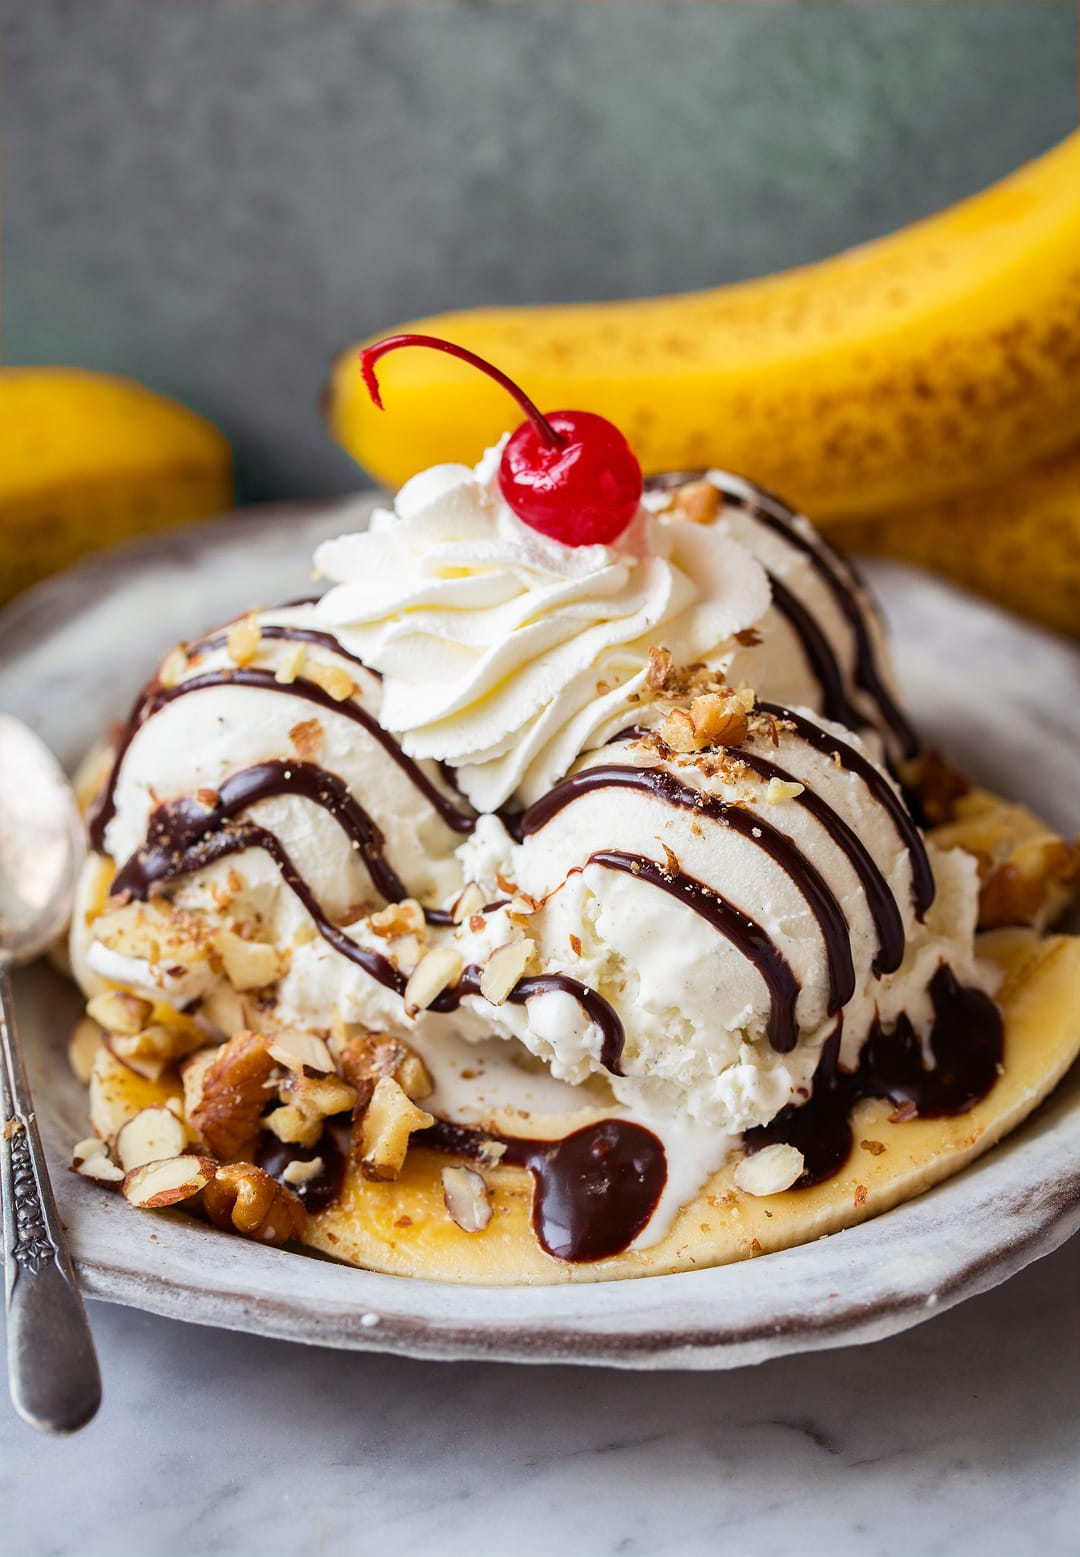 banana split drizzled with homemade hot fudge sauce